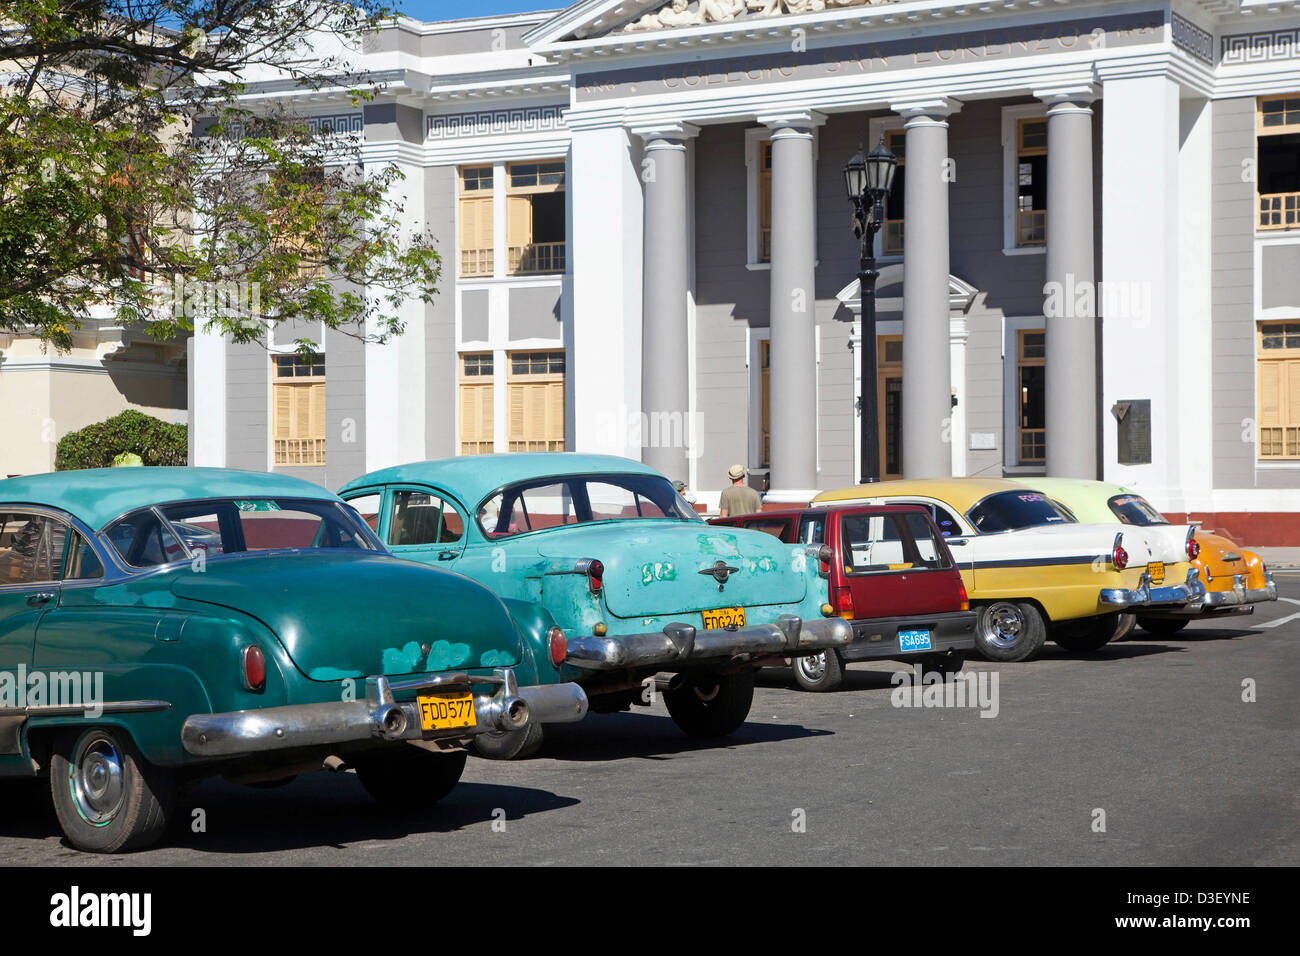 Old 1950s vintage American cars / Yank tank parked in front of the ...